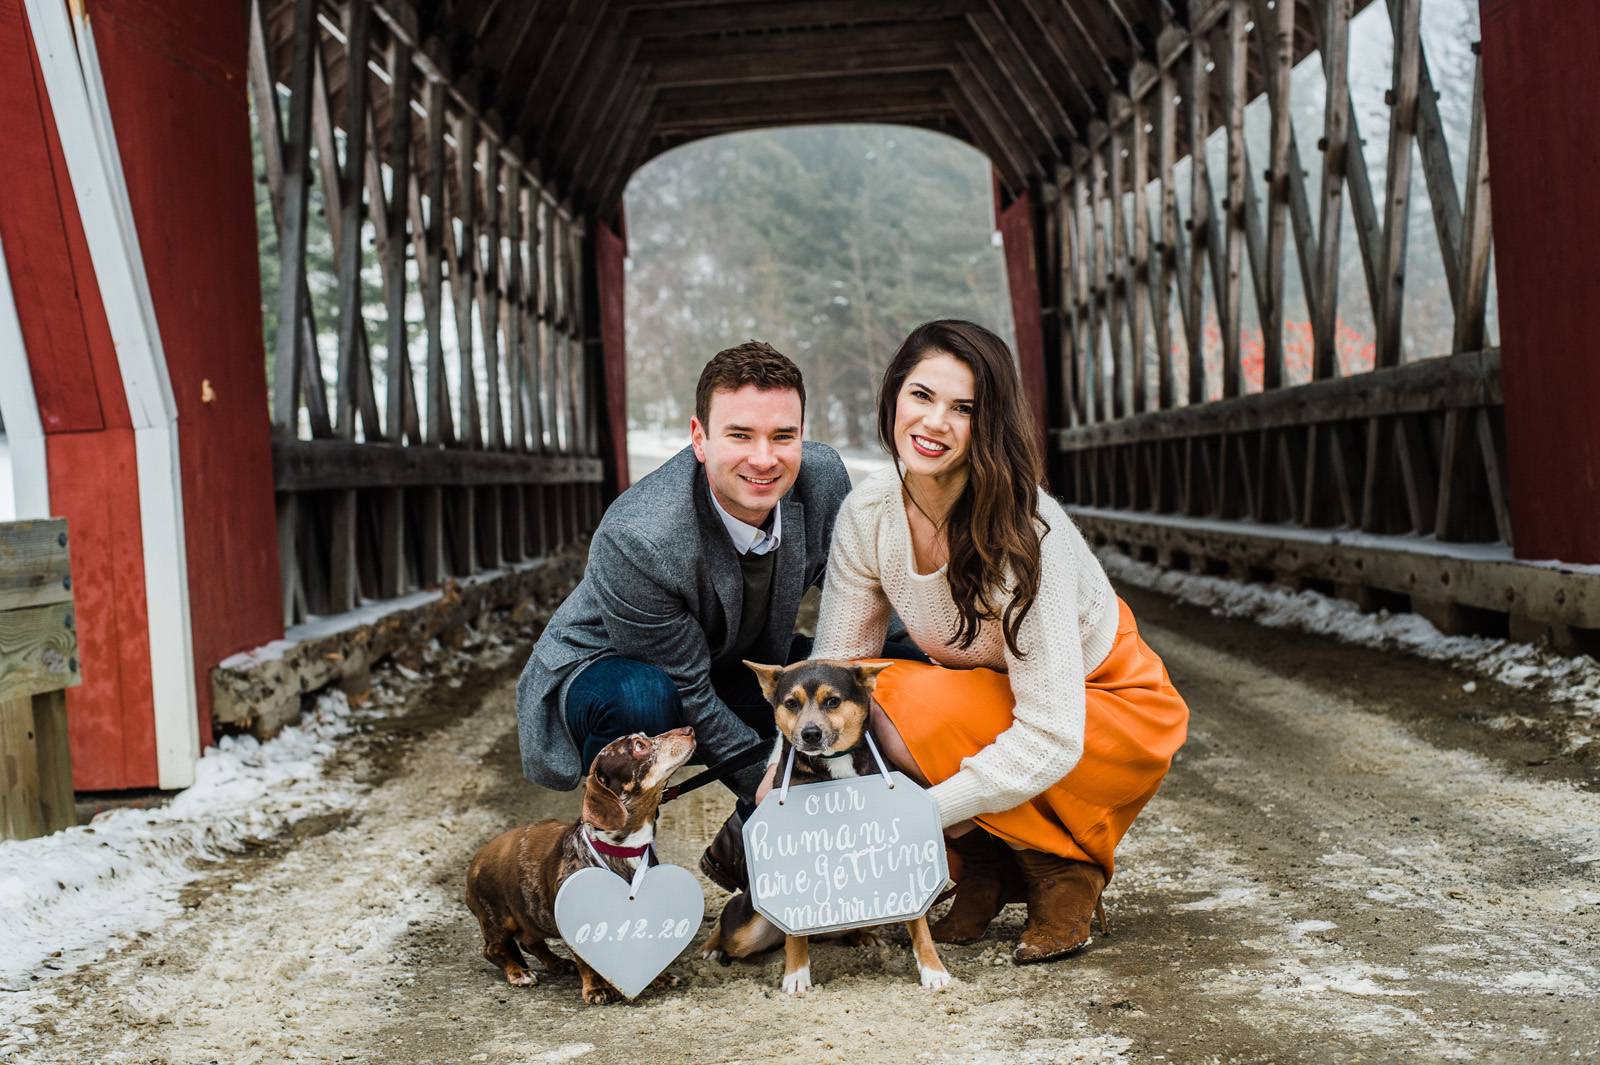 Engaged couple poses with dogs for photo with sign of their wedding date